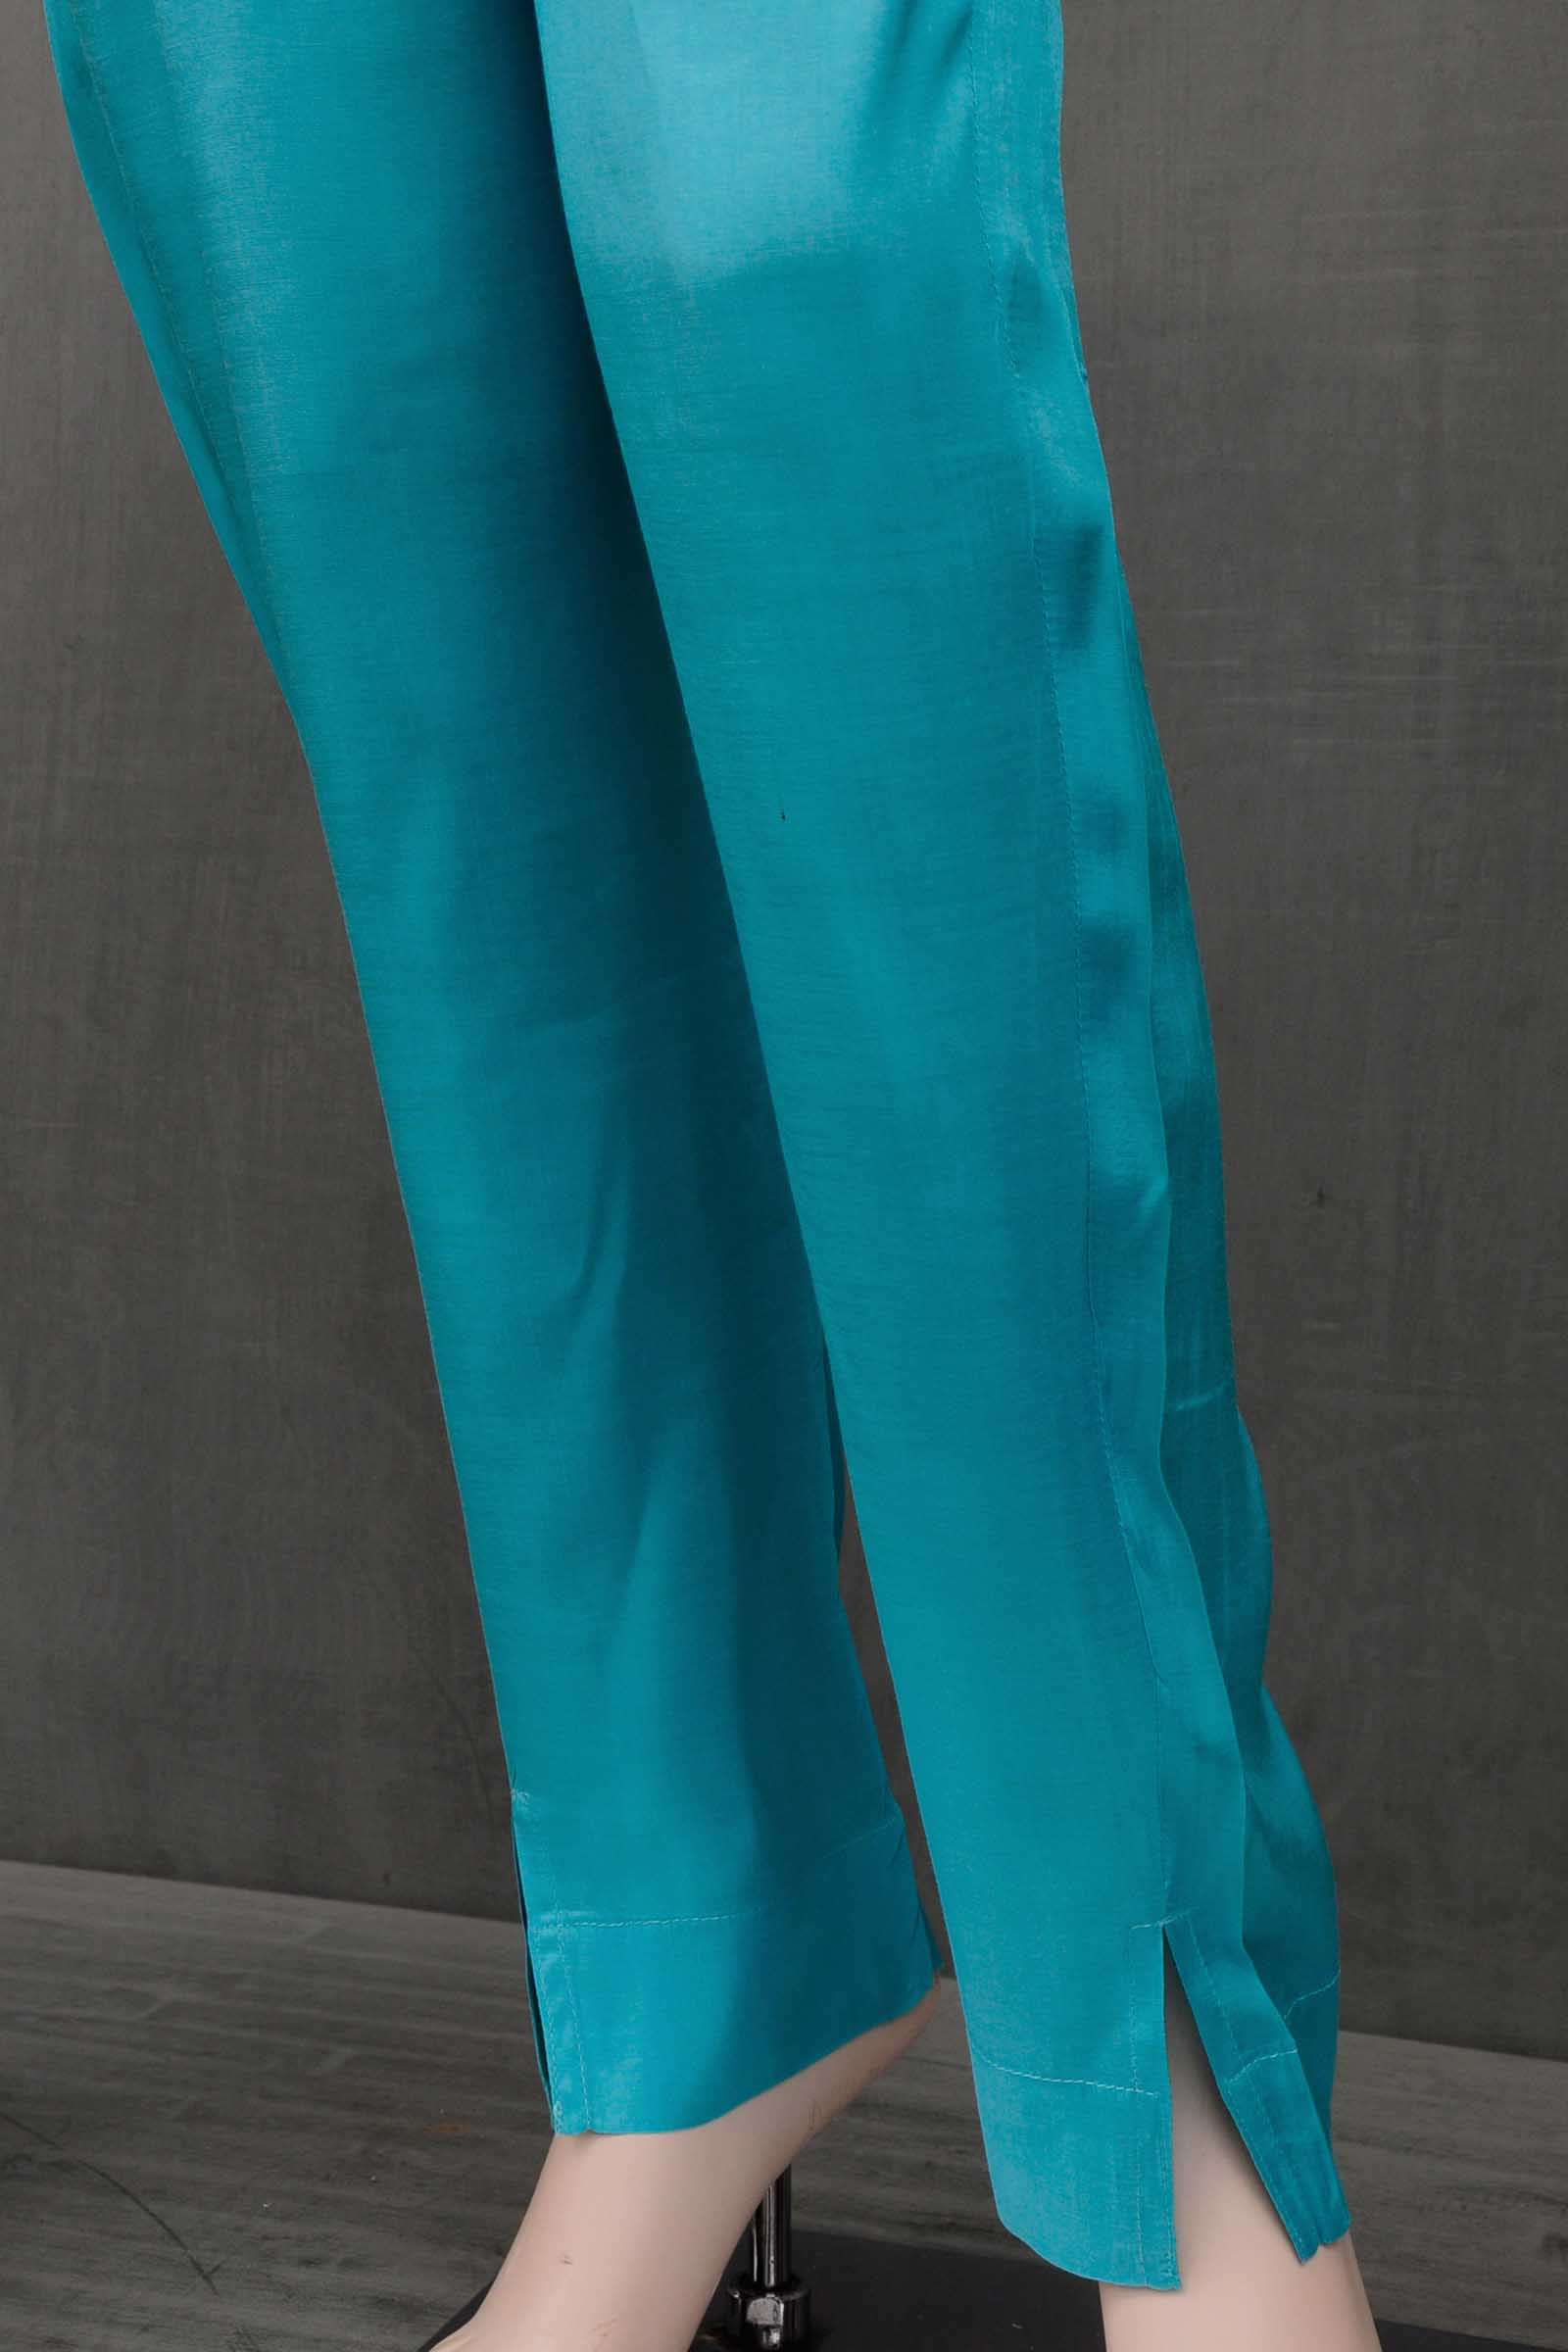 Tiffany Assam Silk Cigarette Pant